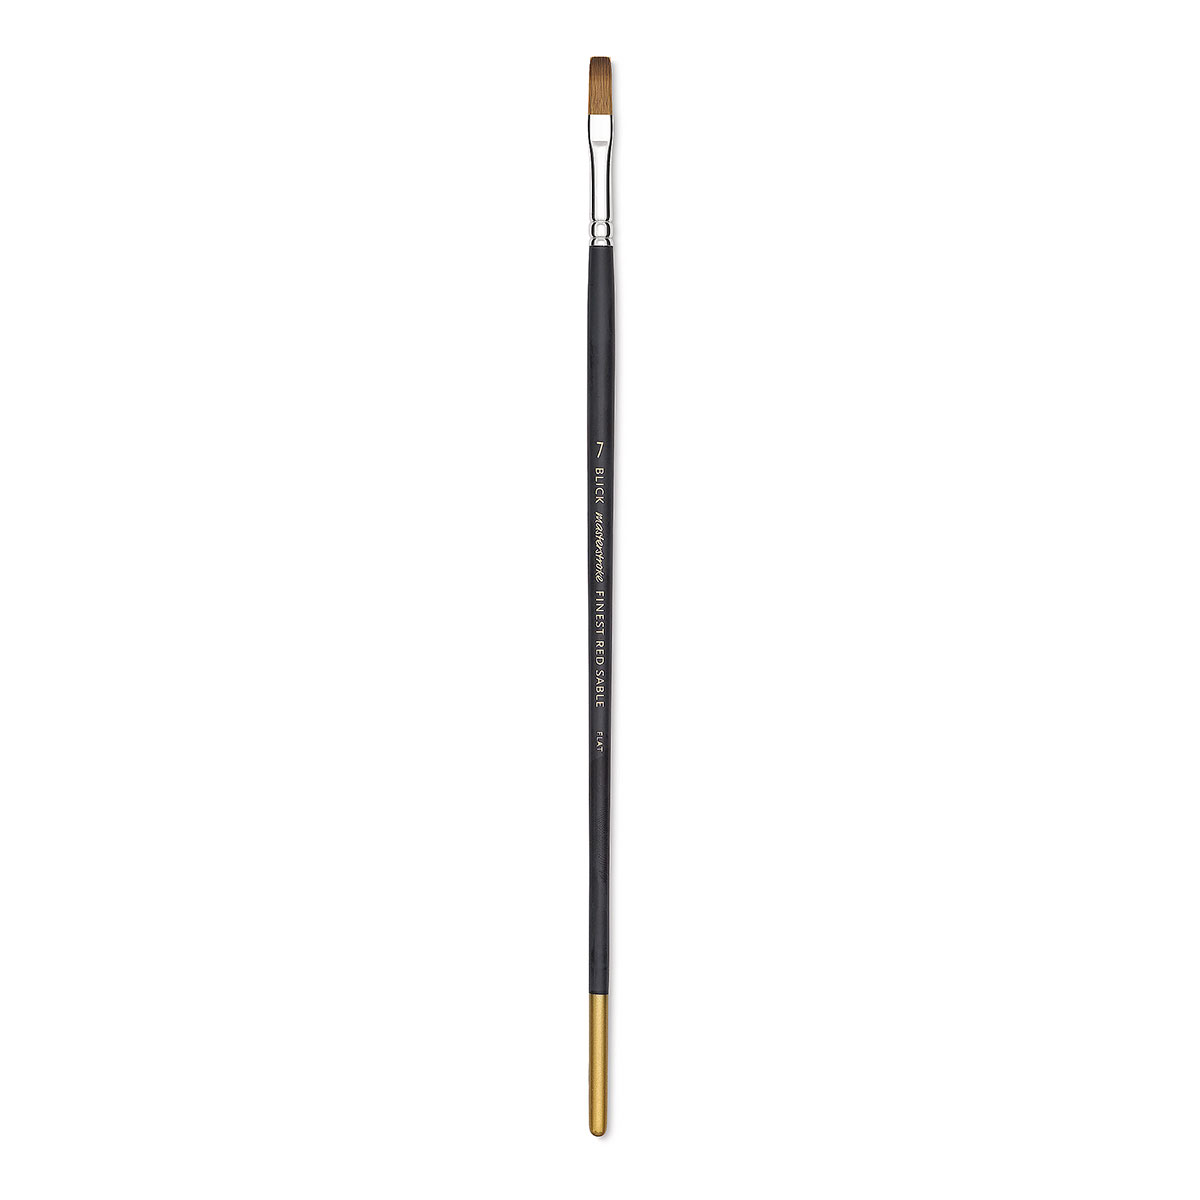 Blick Masterstroke Finest Red Sable Brush - Flat, Size 7, Long Handle